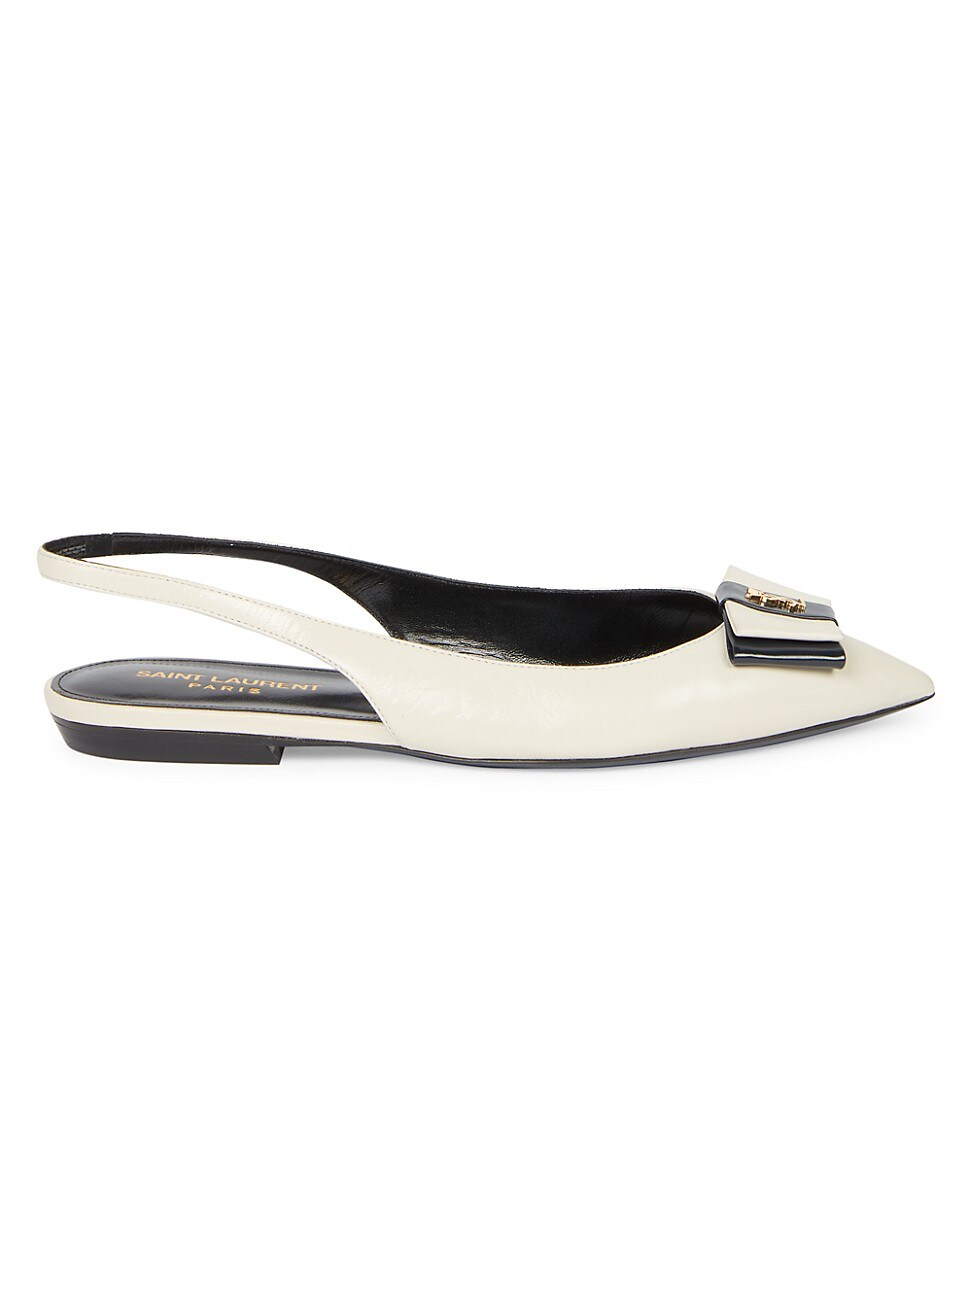 Saint Laurent WOMEN'S ANAIS LEATHER SLINGBACK FLATS